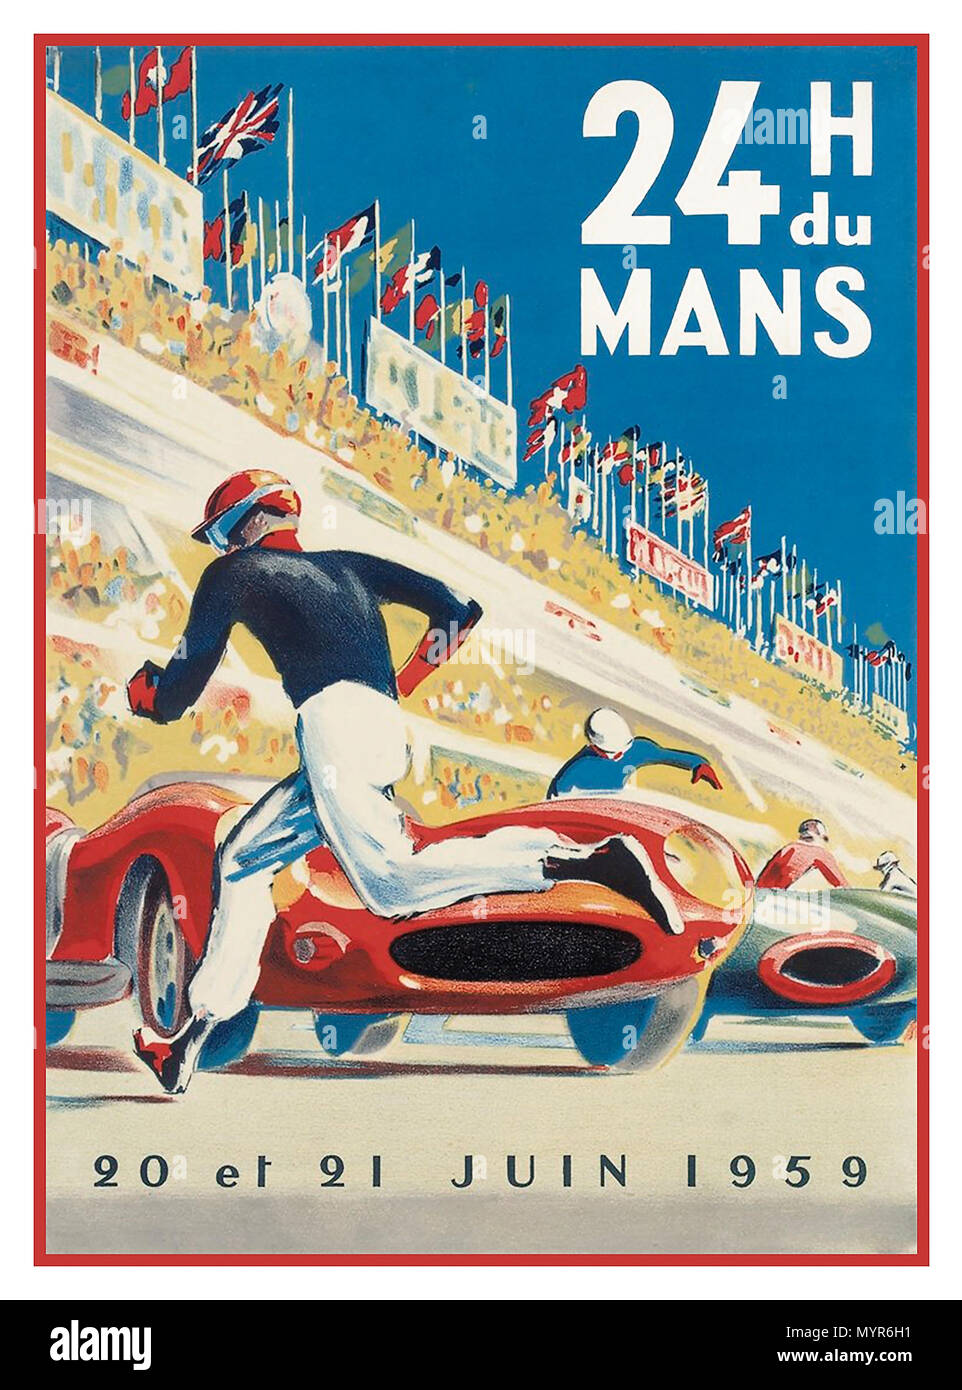 Vintage Le Mans motor racing poster 24 Hours du Mans lithograph 20/21st June 1959 Le Mans France with drivers running to cars traditional start - Stock Image